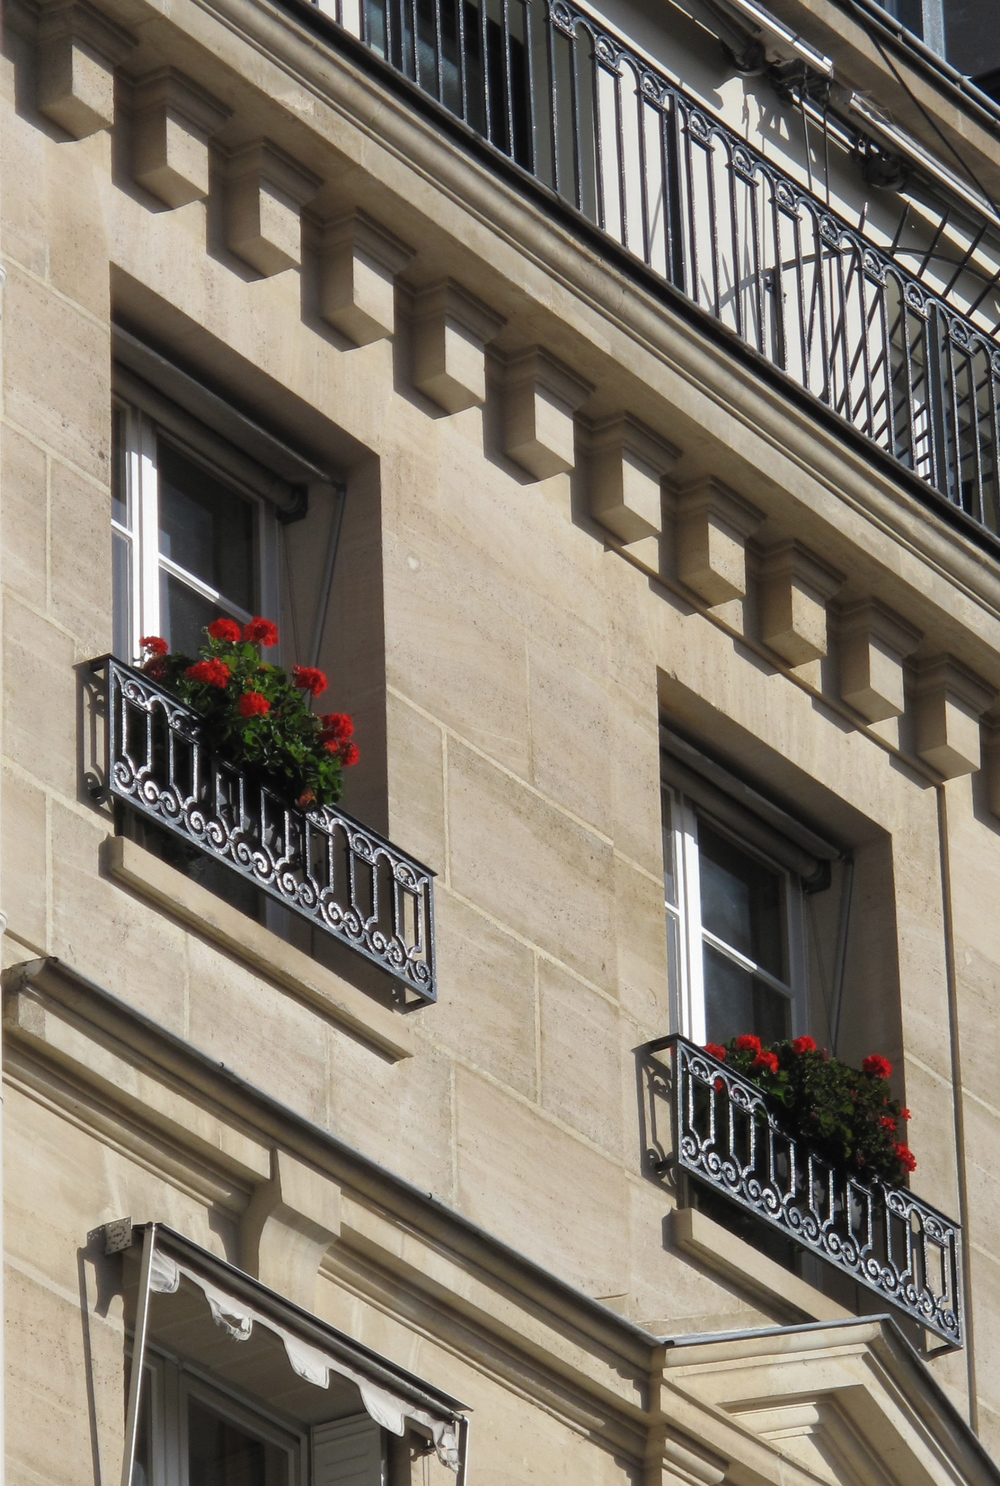 Quaint stone buildings and window flowers on the Île Saint Louis